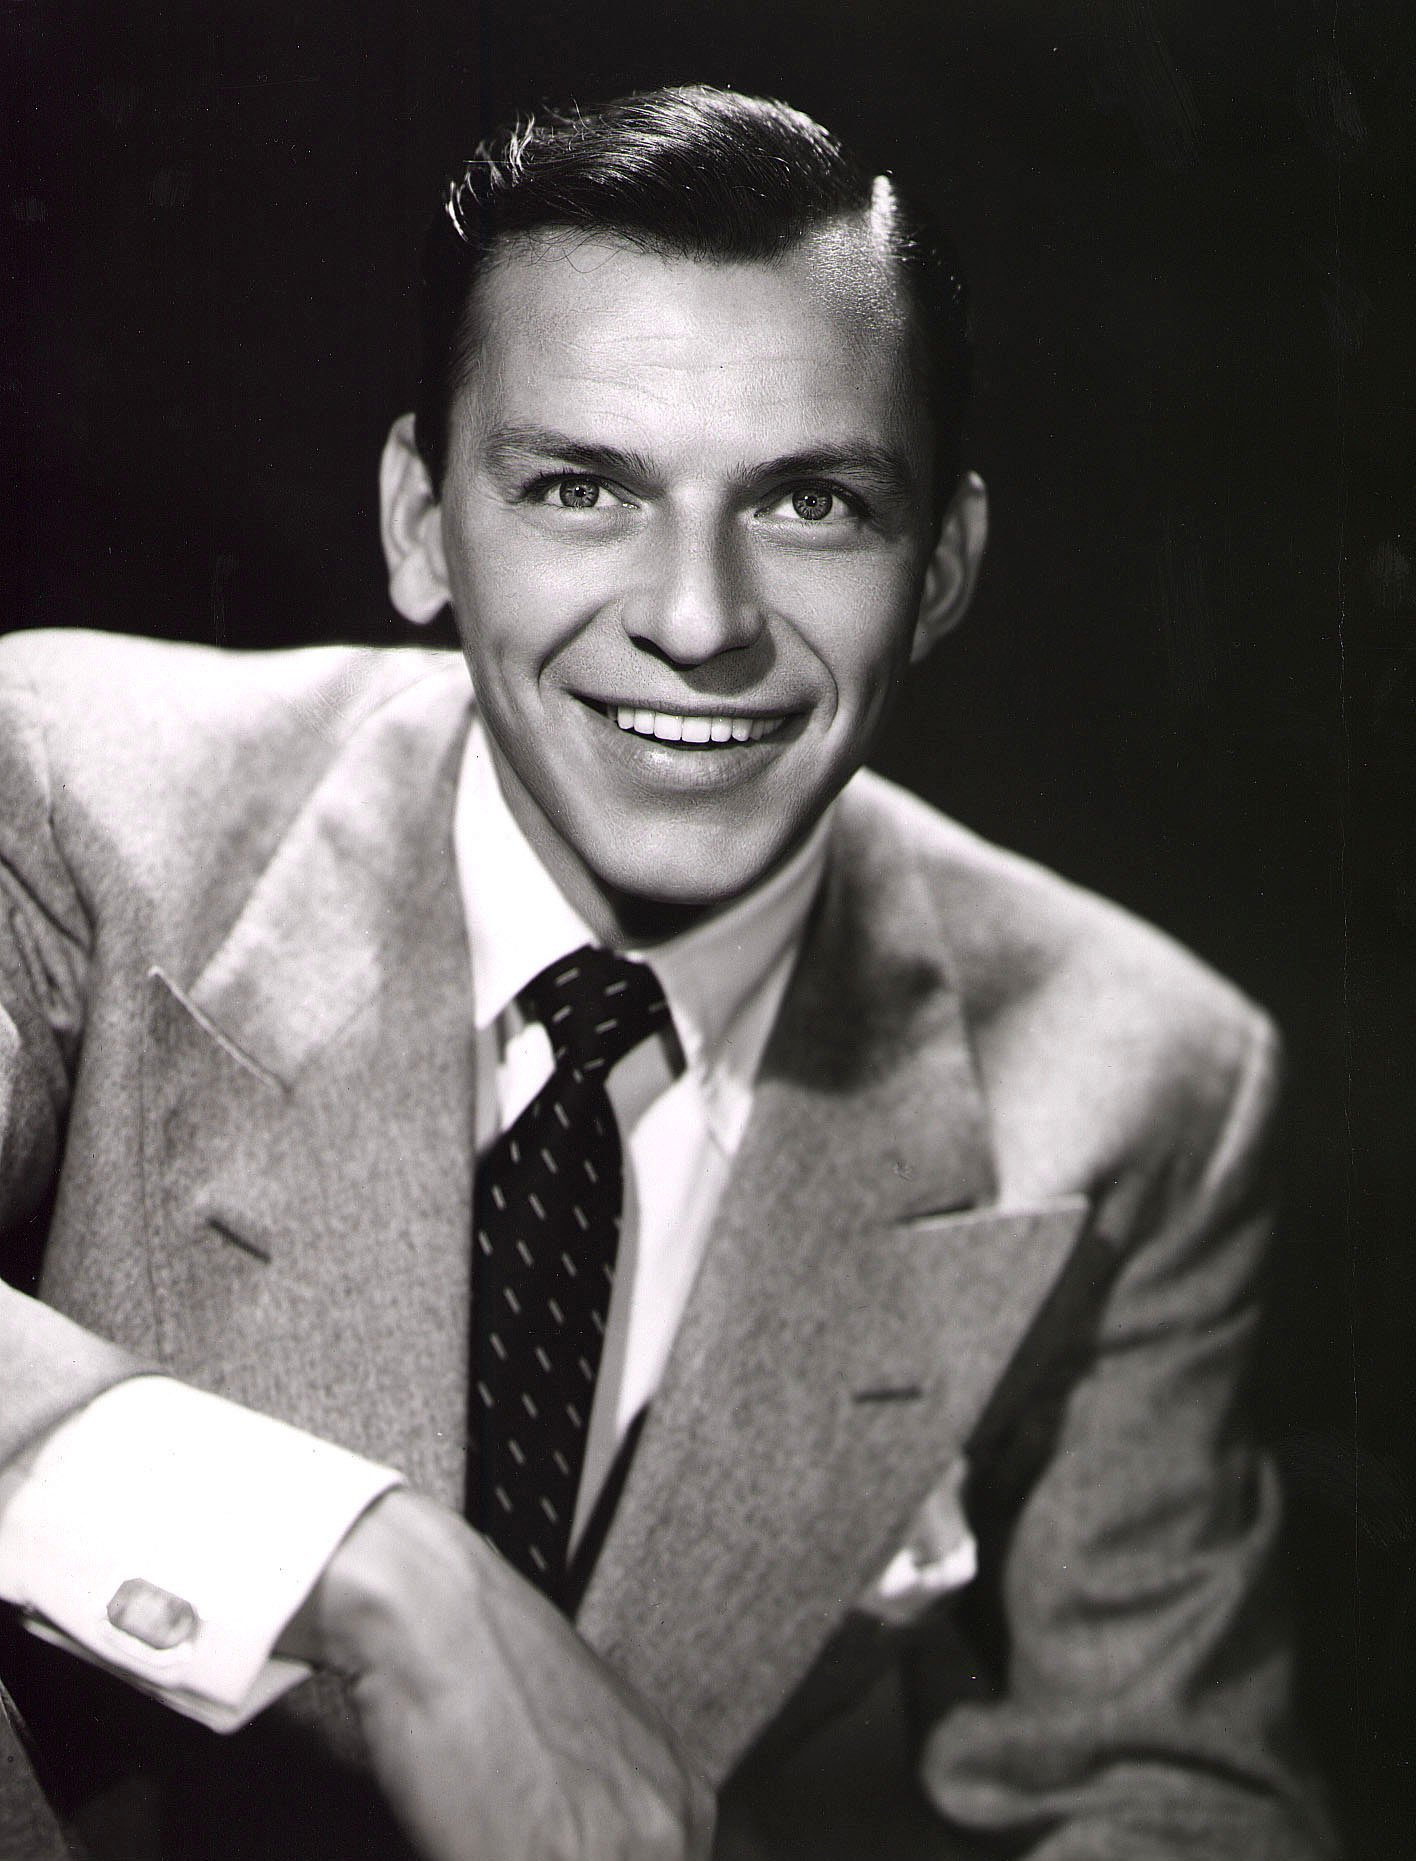 Frank Sinatra, Dec 12, 1915 I Image: Getty Images